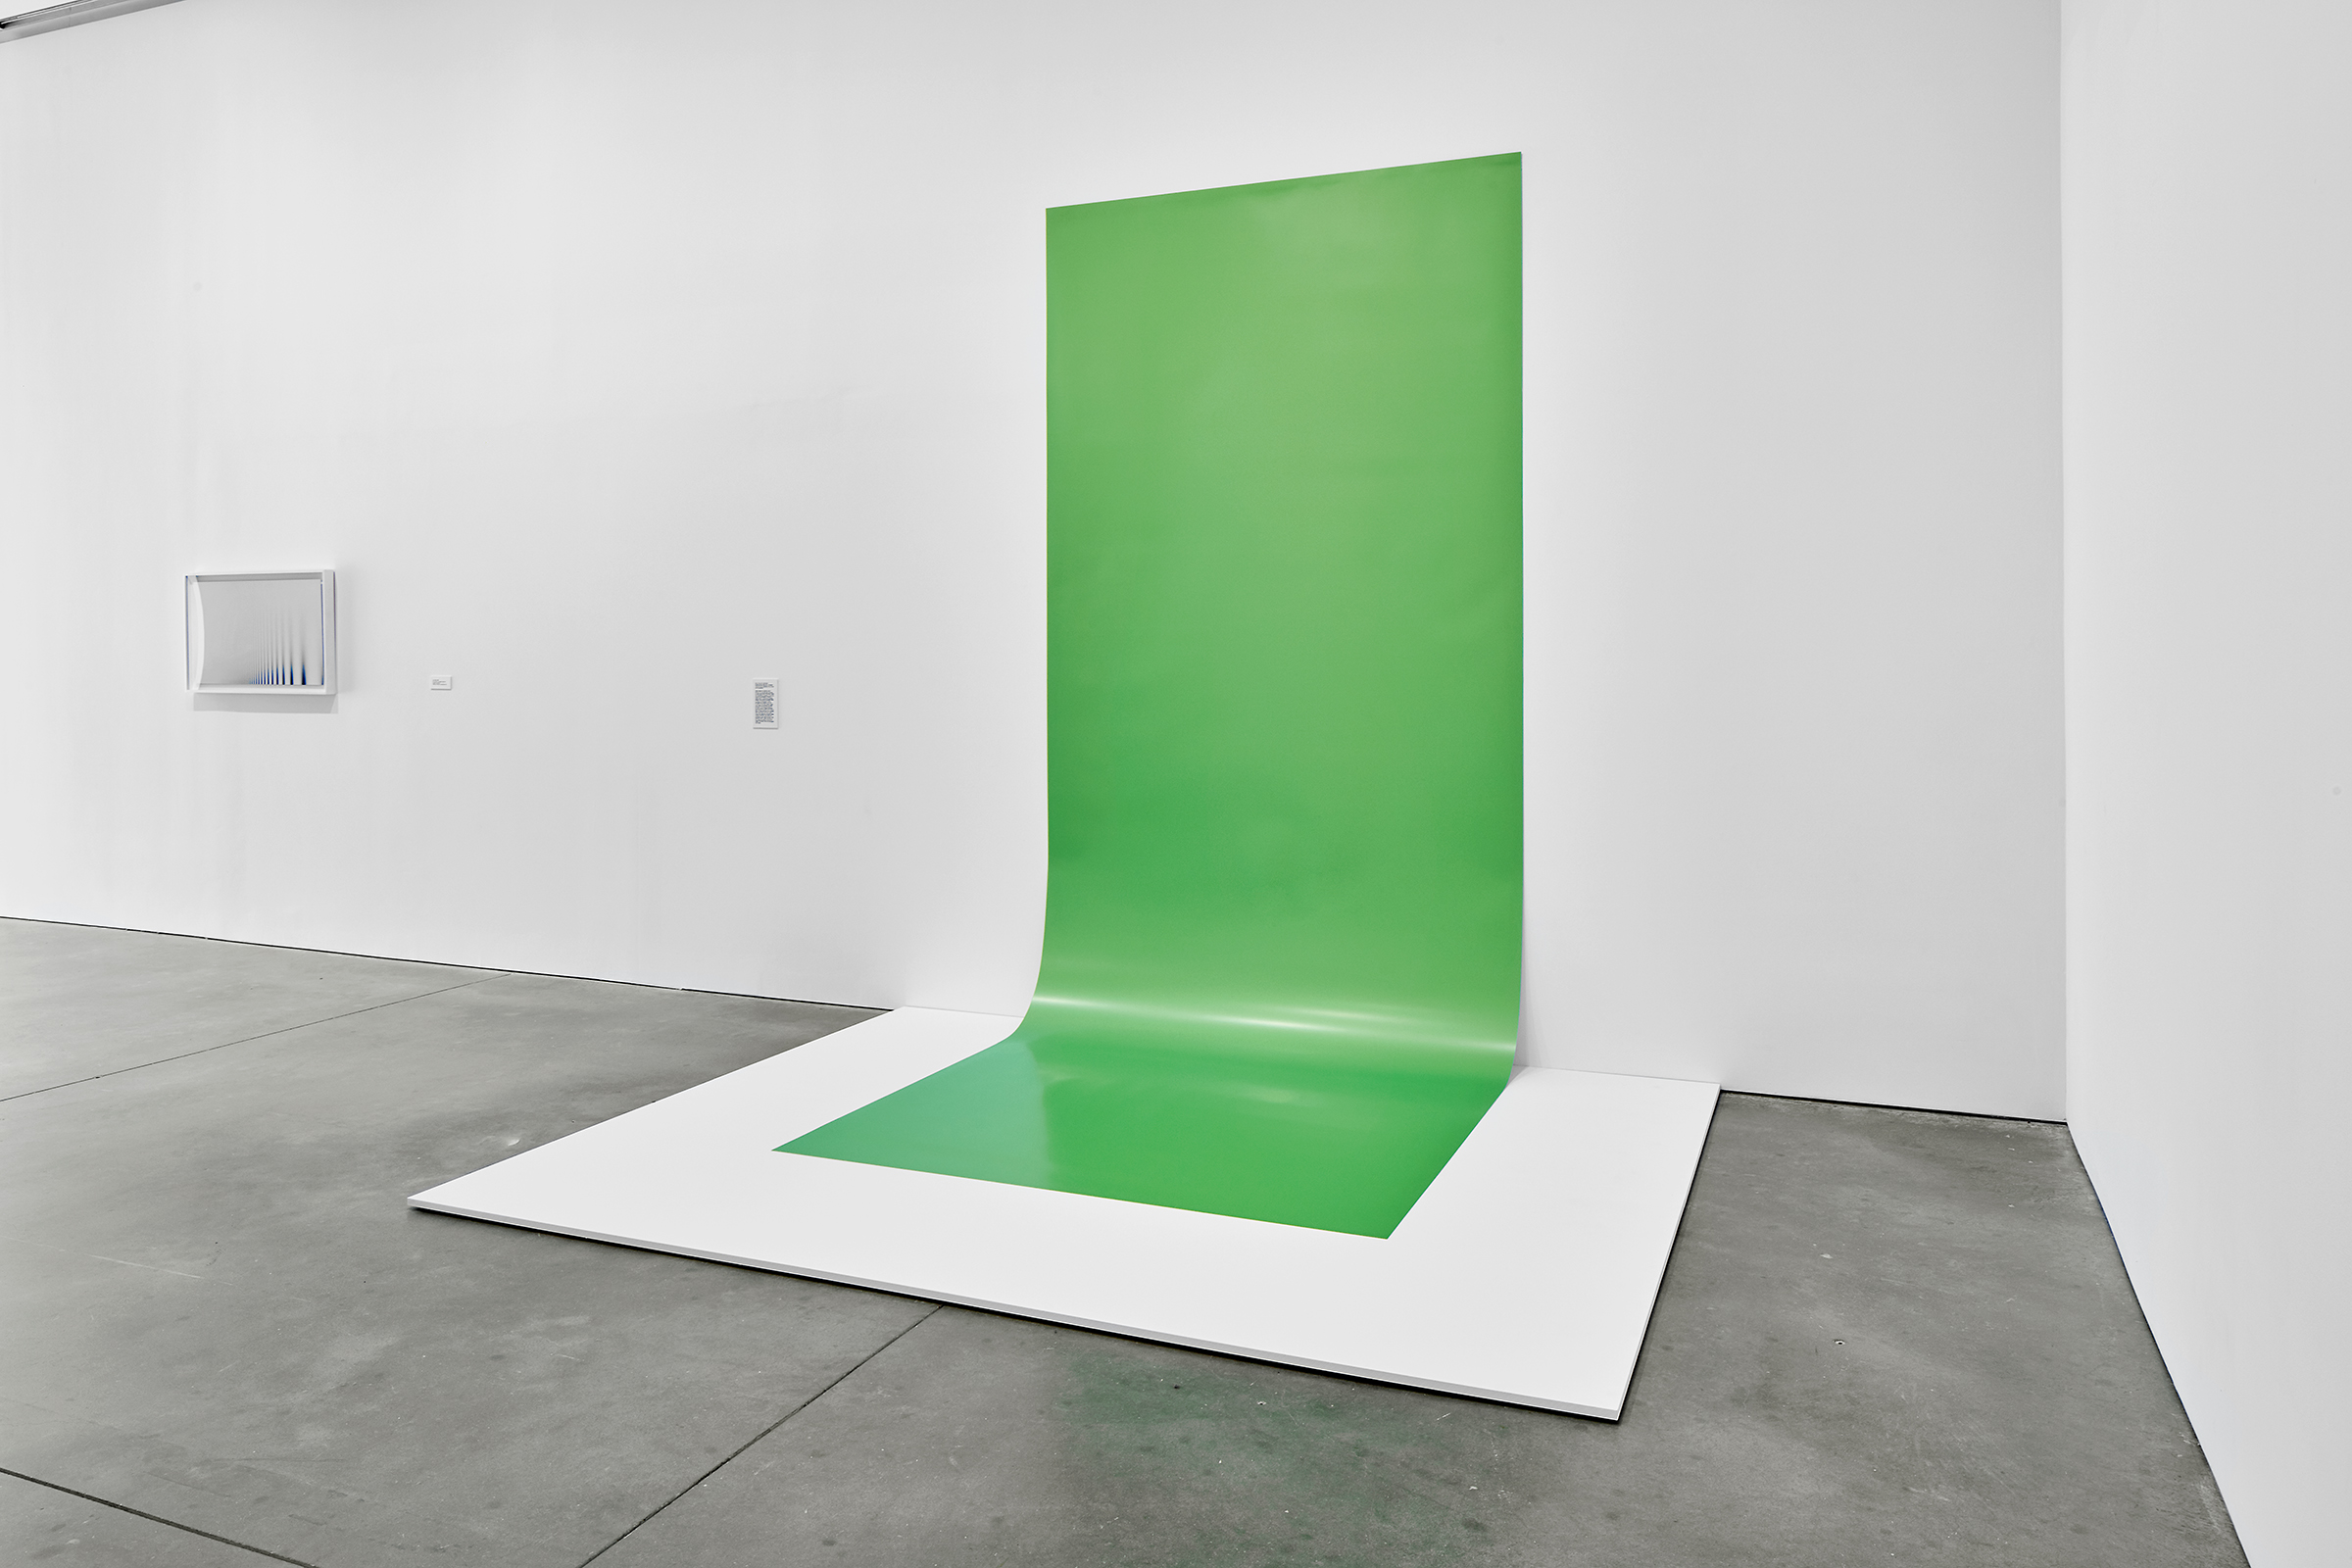 Green Screen #4, 2001/2016. Exhibition: Liz Deschenes, ICA Boston (June 29 - October 16, 2016). Photos courtesy the artist and Miguel Abreau Gallery, New York.